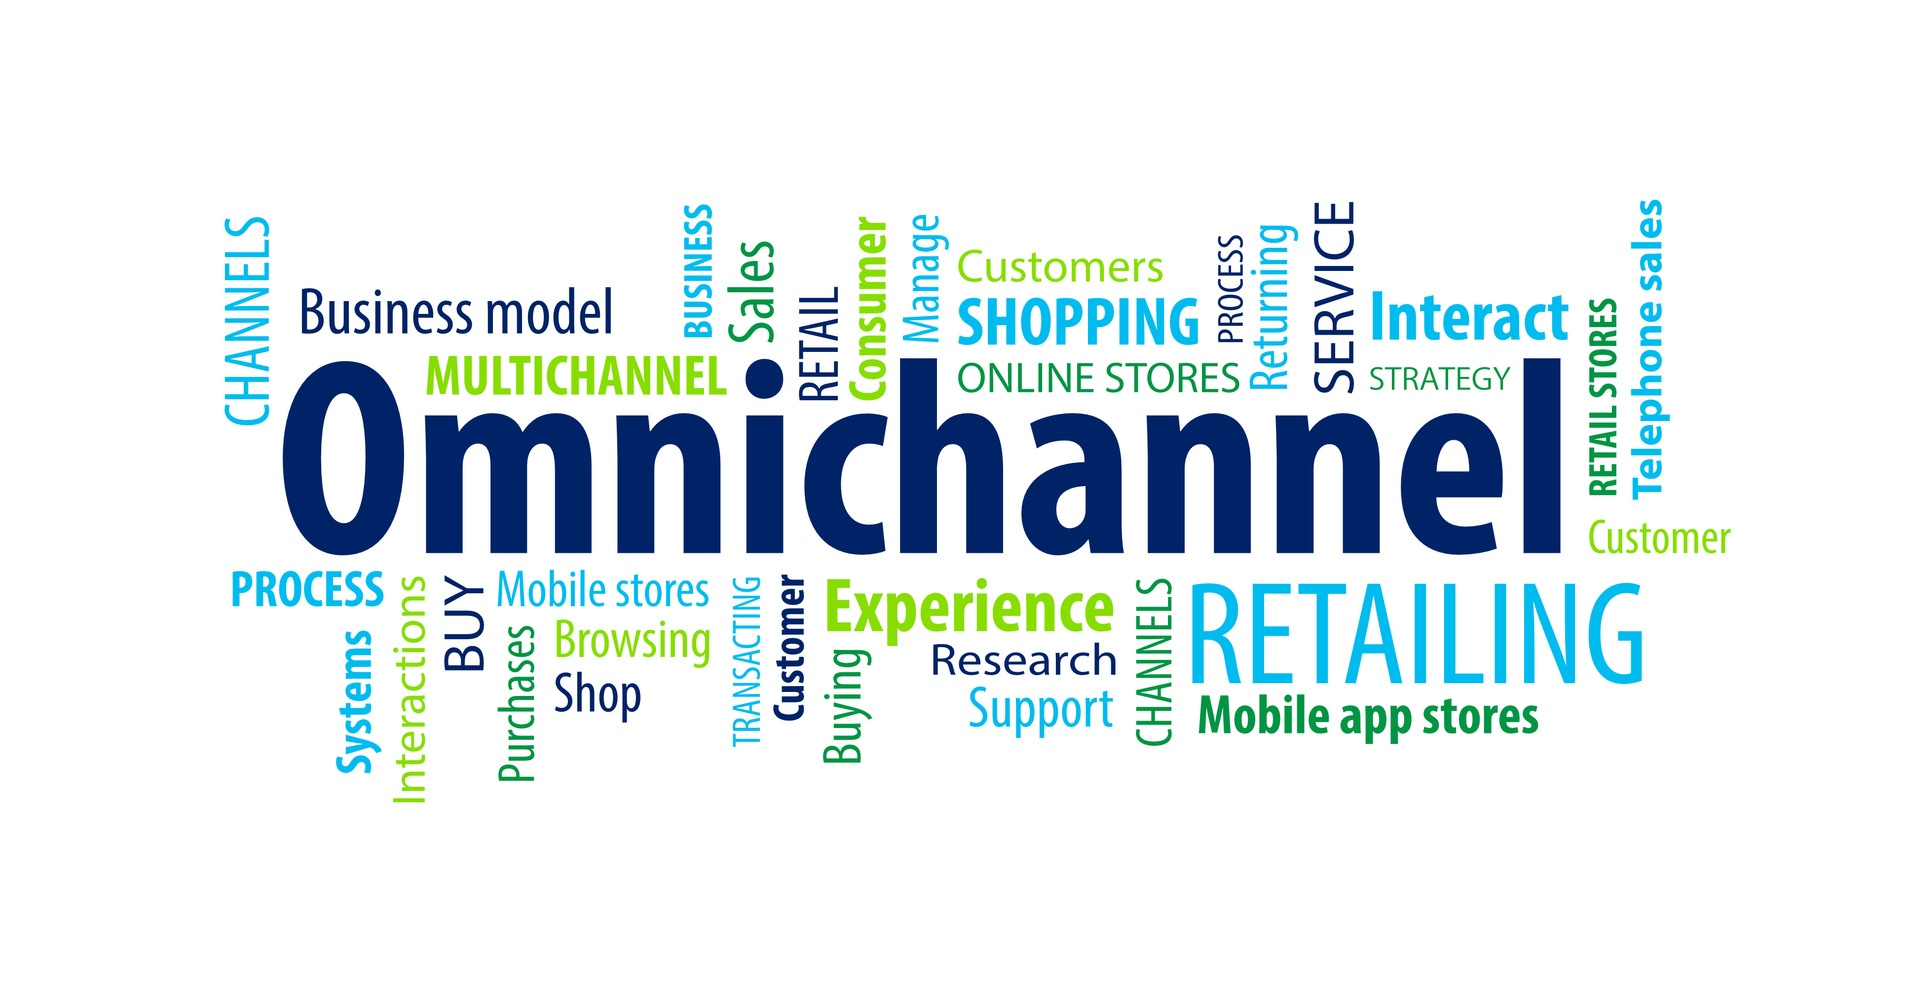 Multi channel retailing and ecommerce display of retail terminology.